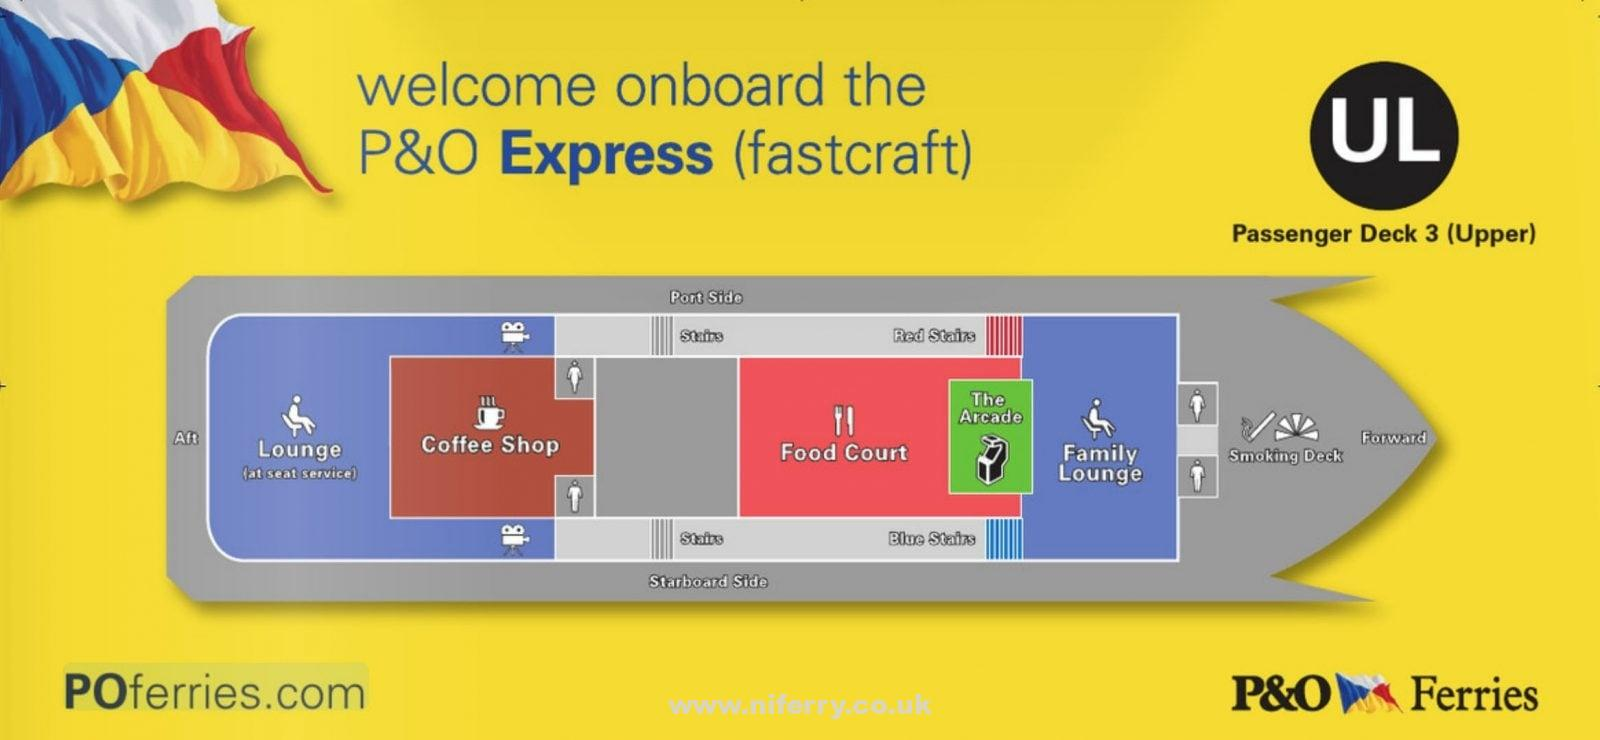 P&O EXPRESS upper passenger deck (deck 3) deck plan. P&O Ferries